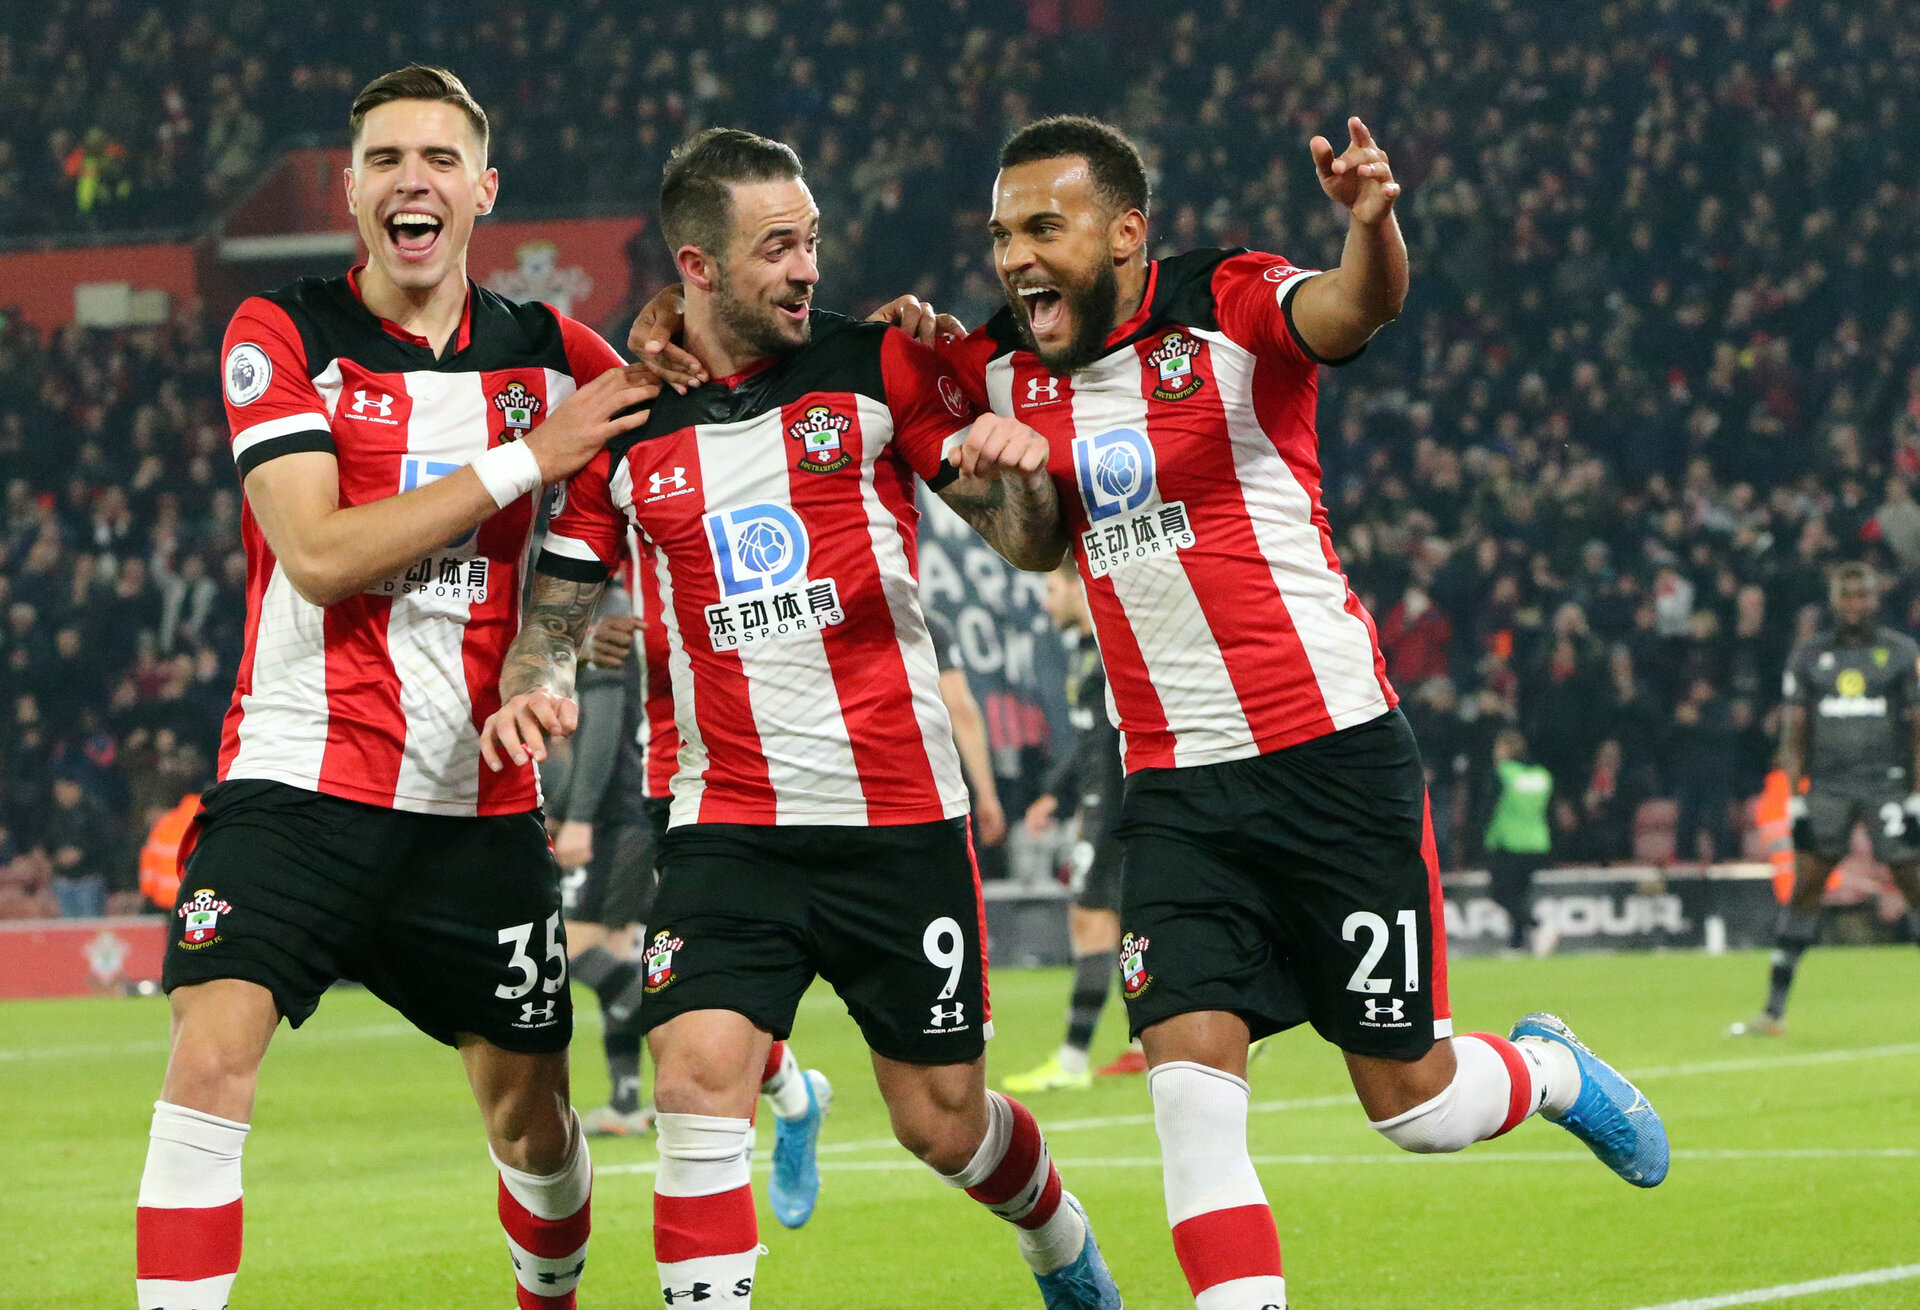 SOUTHAMPTON, ENGLAND - DECEMBER 4: yan Bertrand's goal celebration during the Premier League match between Southampton FC and with Norwich City FC at St Mary's Stadium on December 4, 2019 in Southampton, United Kingdom. (Photo by Chris Moorhouse/Southampton FC via Getty Images)